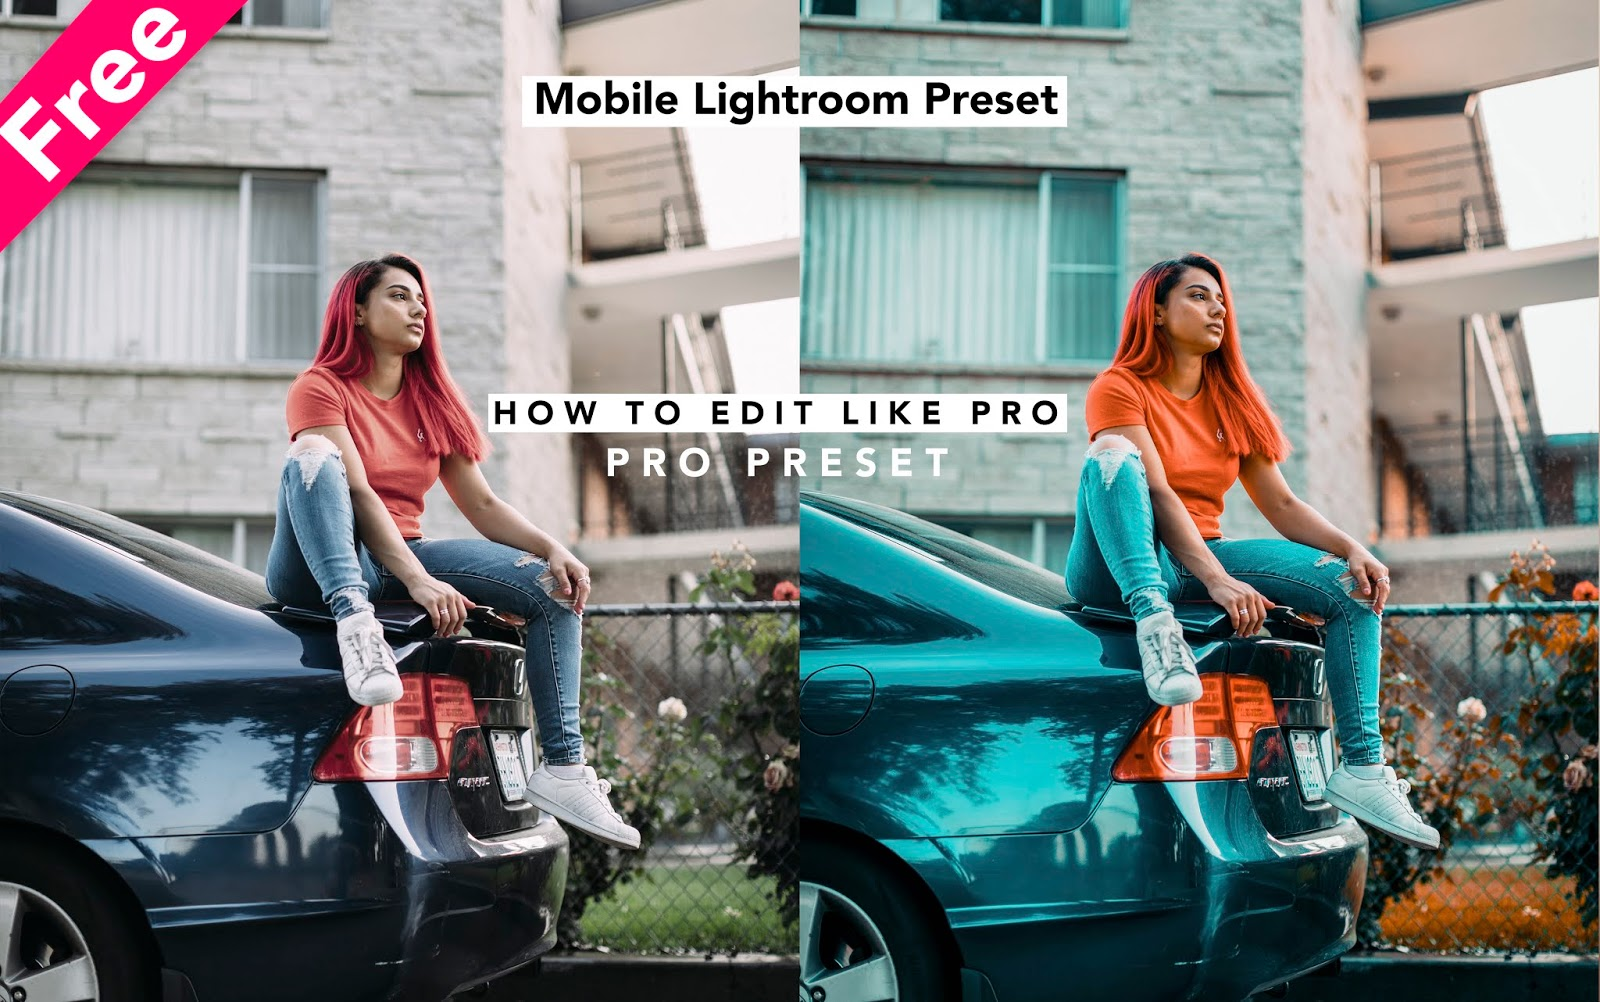 Download Pro Mobile Lightroom Preset for Free | How to Edit Photos Like a Pro in Mobile Lightroom App